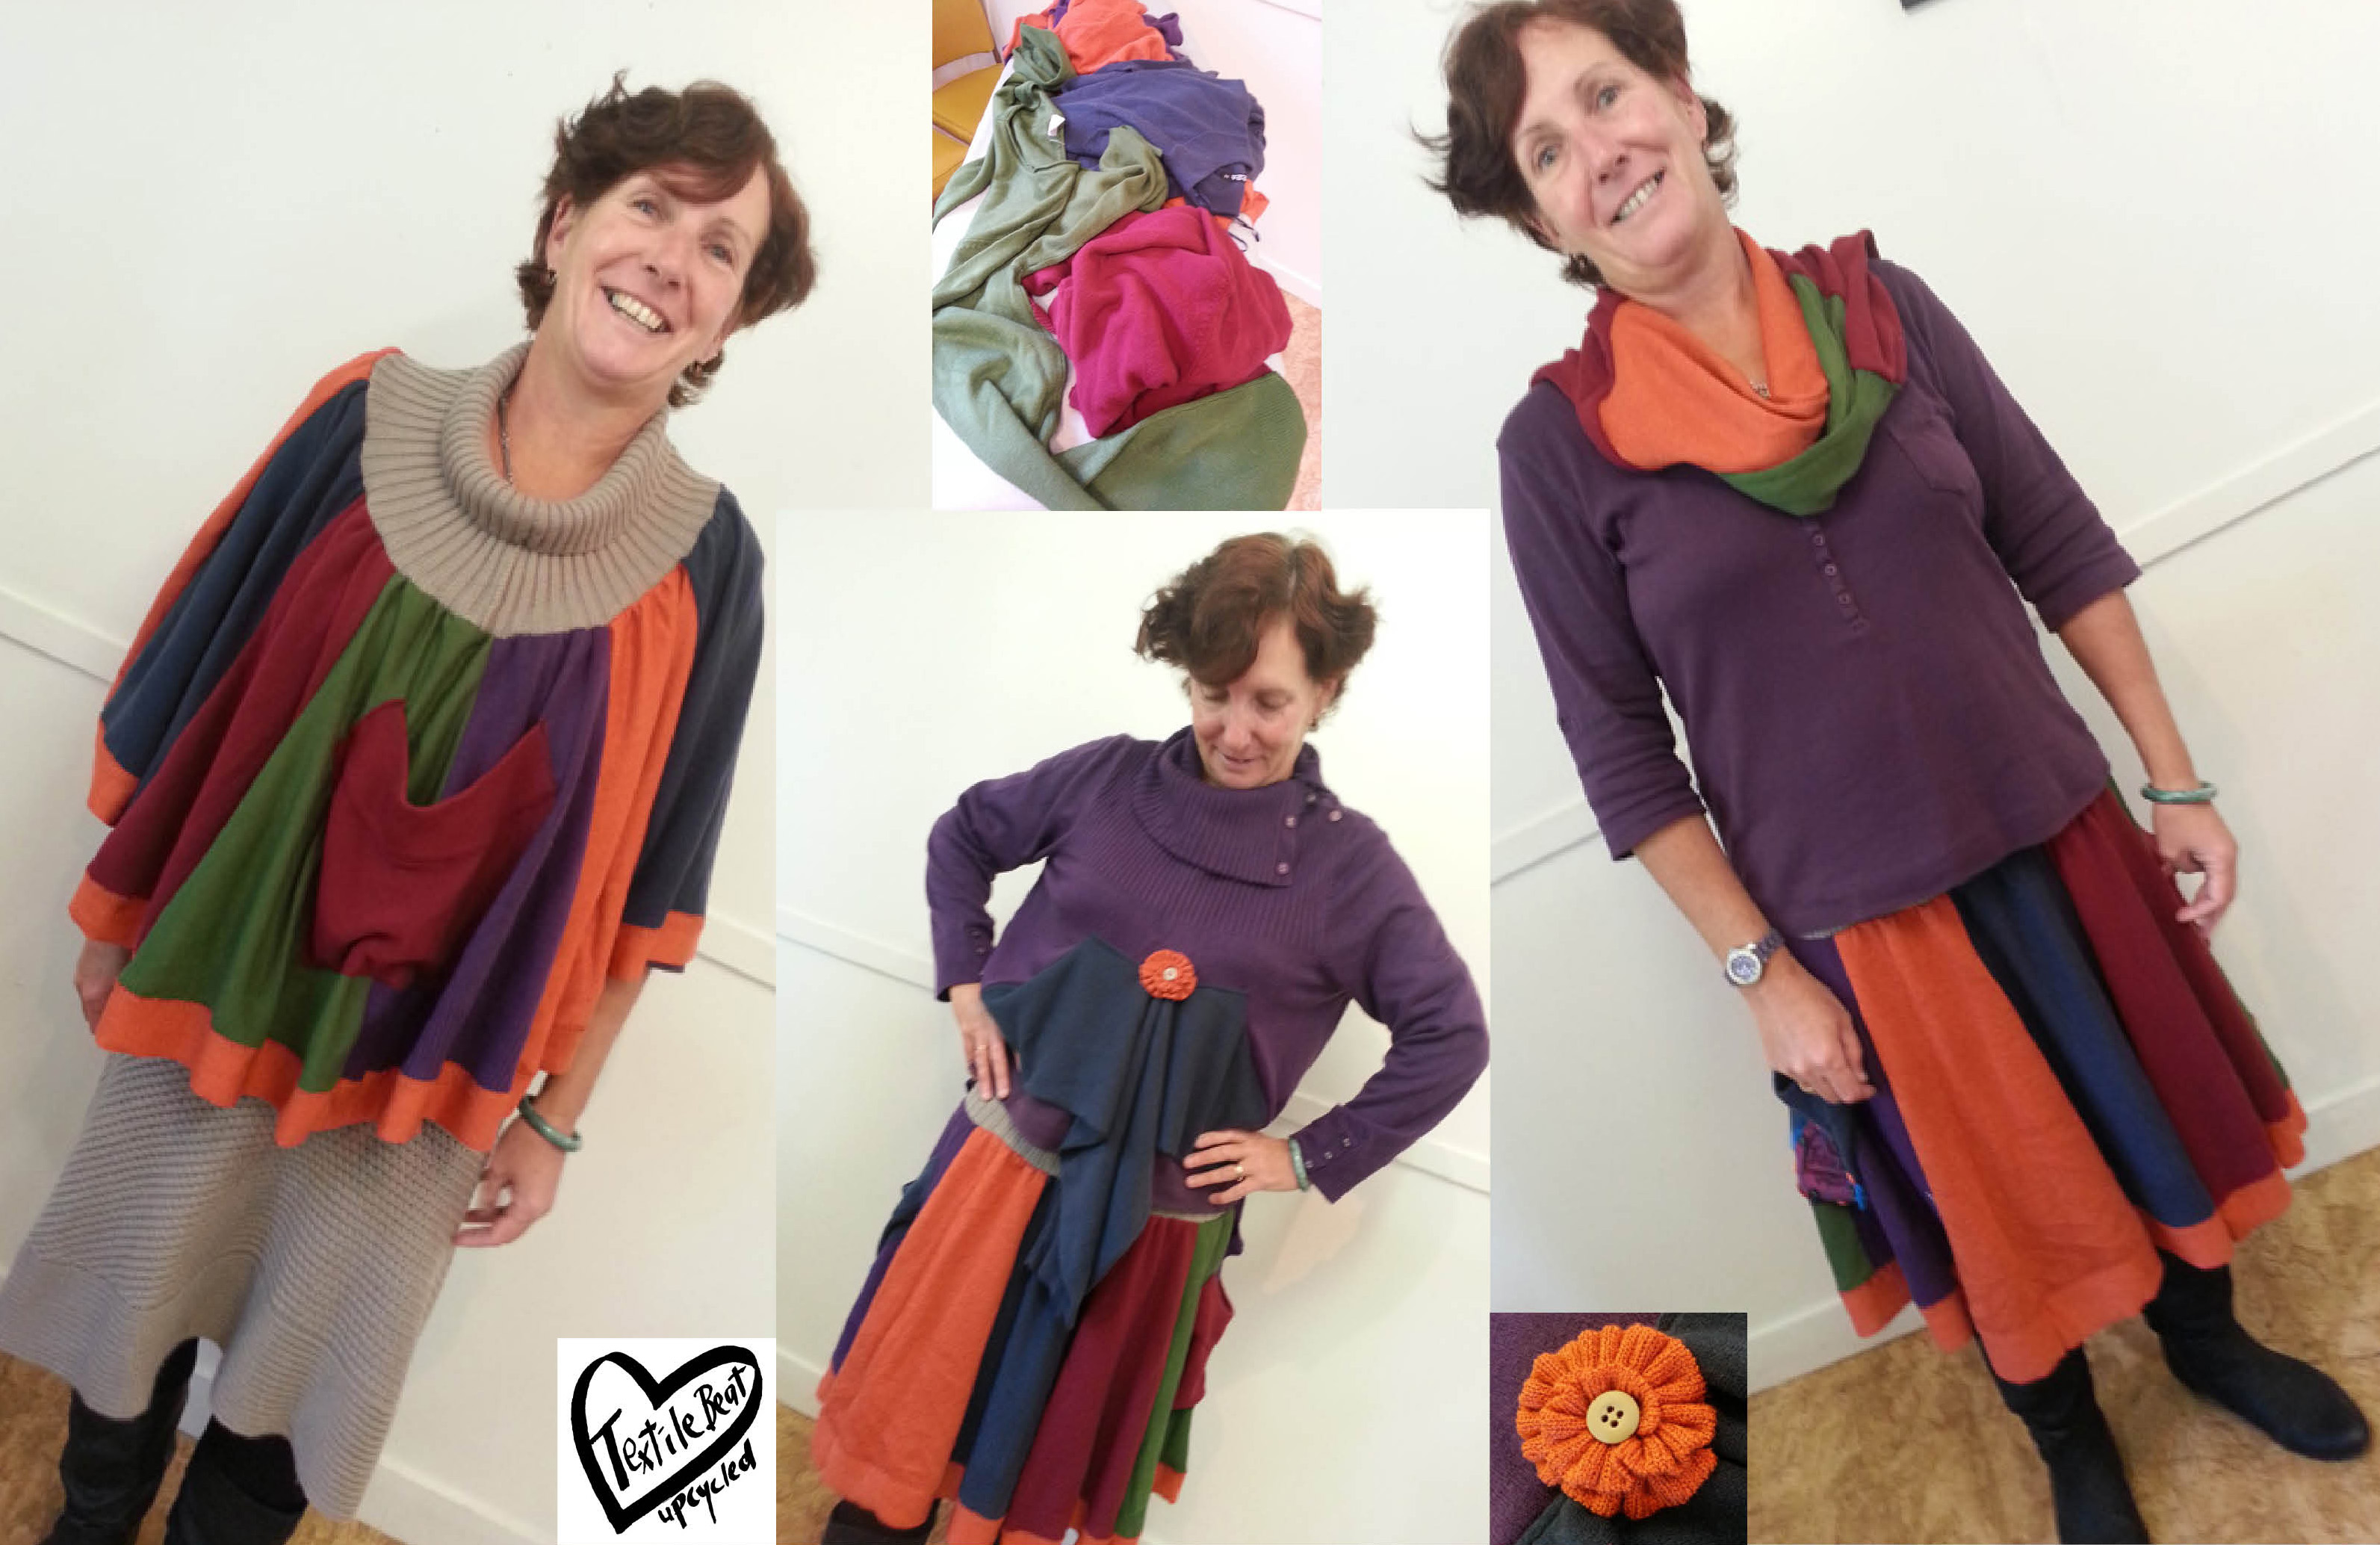 Kerrie upcycles with Textile Beat web